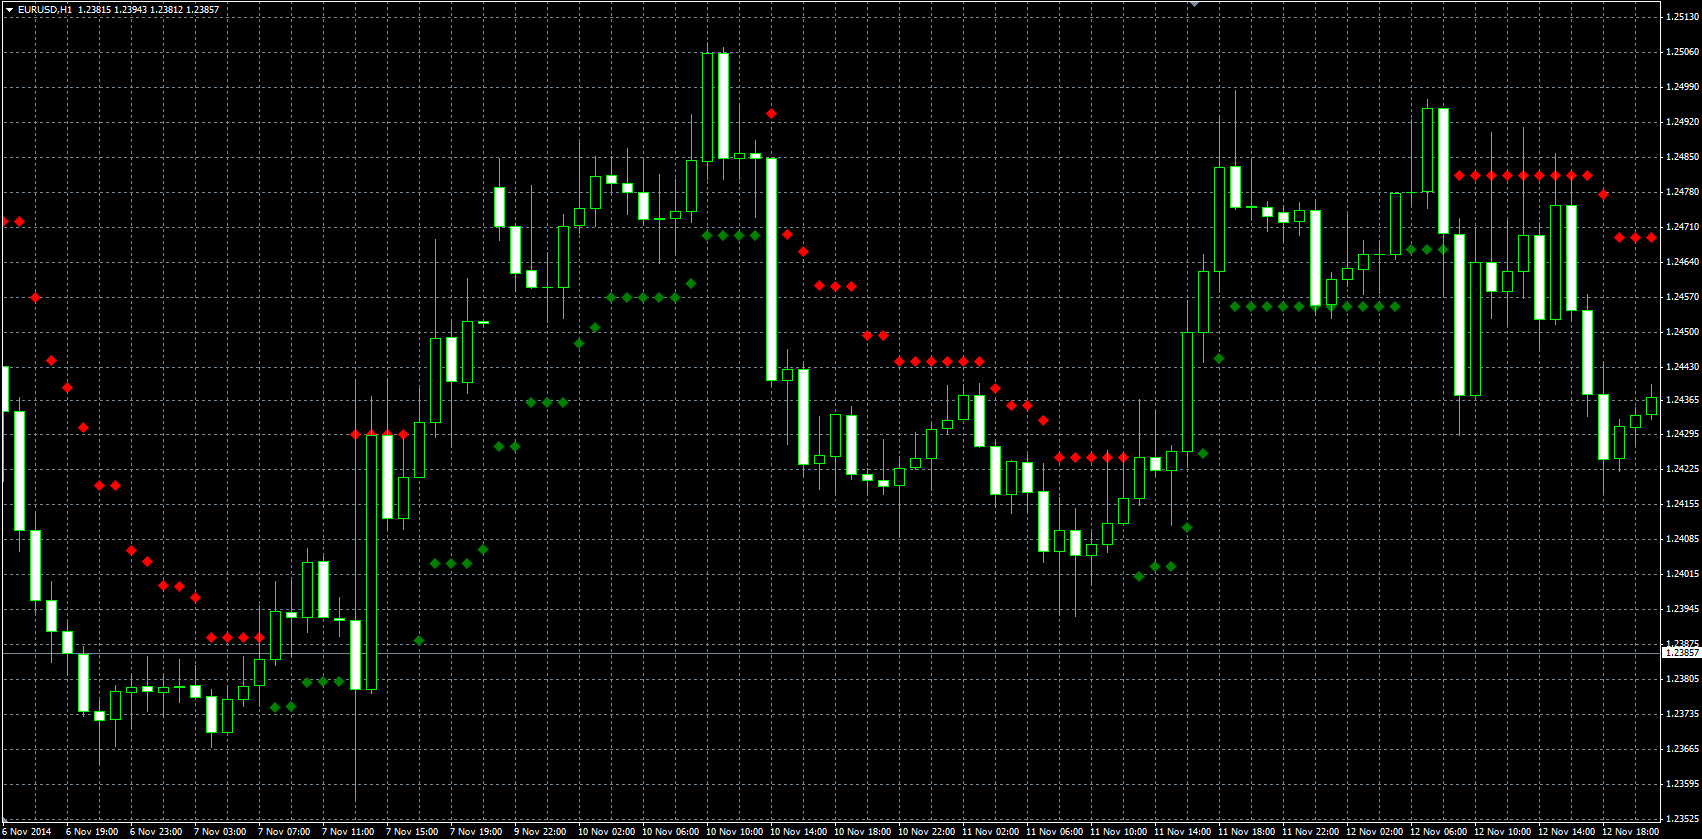 Supertrend indicator trading strategy